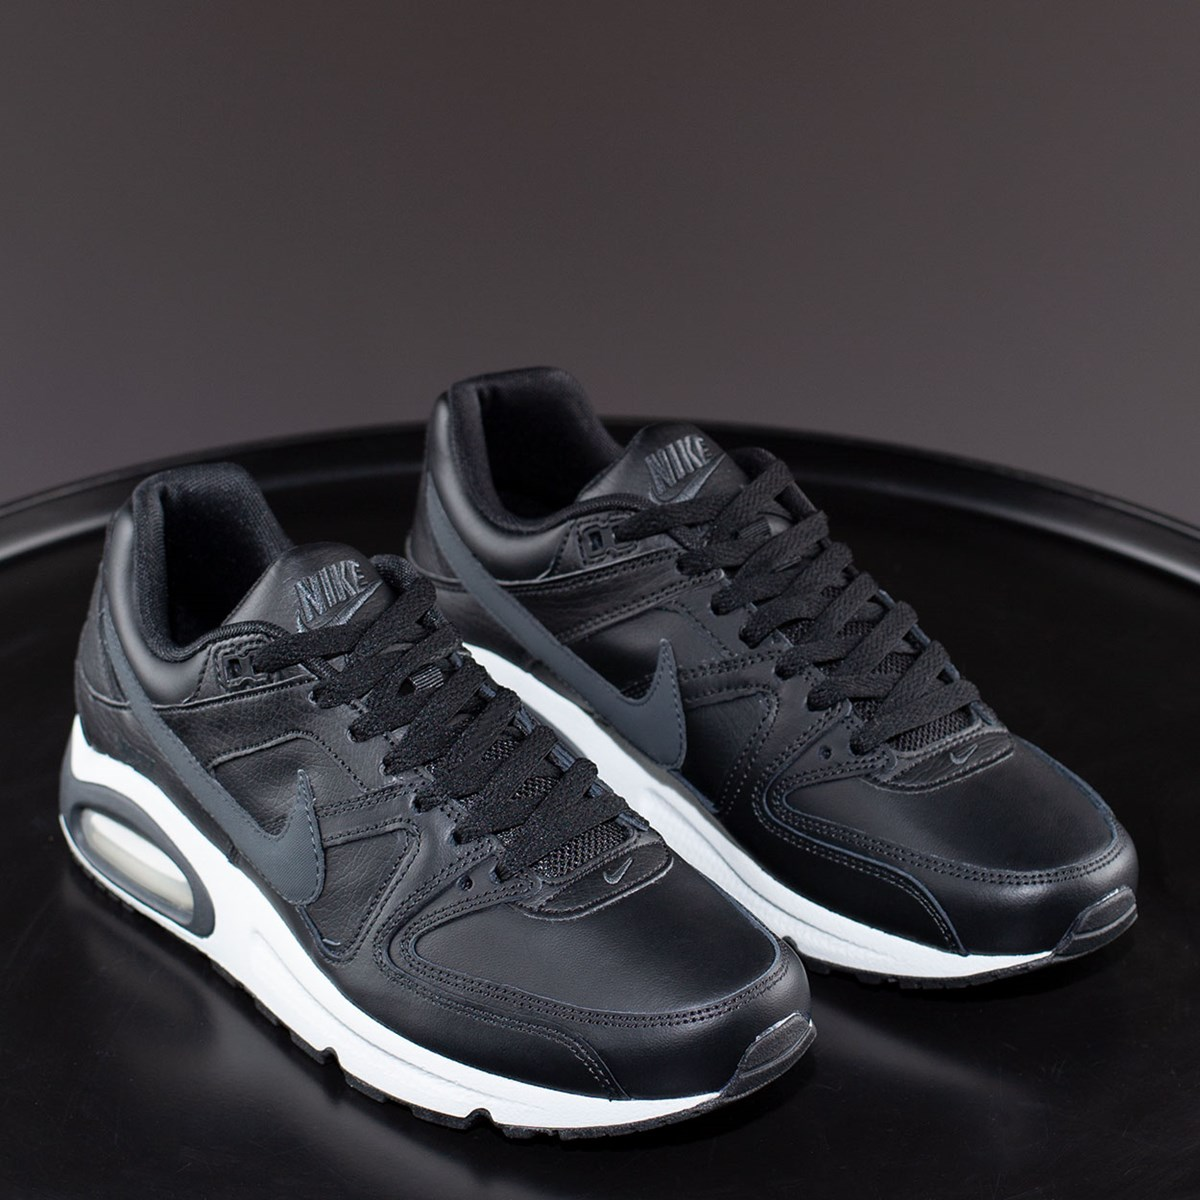 Tênis Nike Air Max Command Leather Black 749760-001